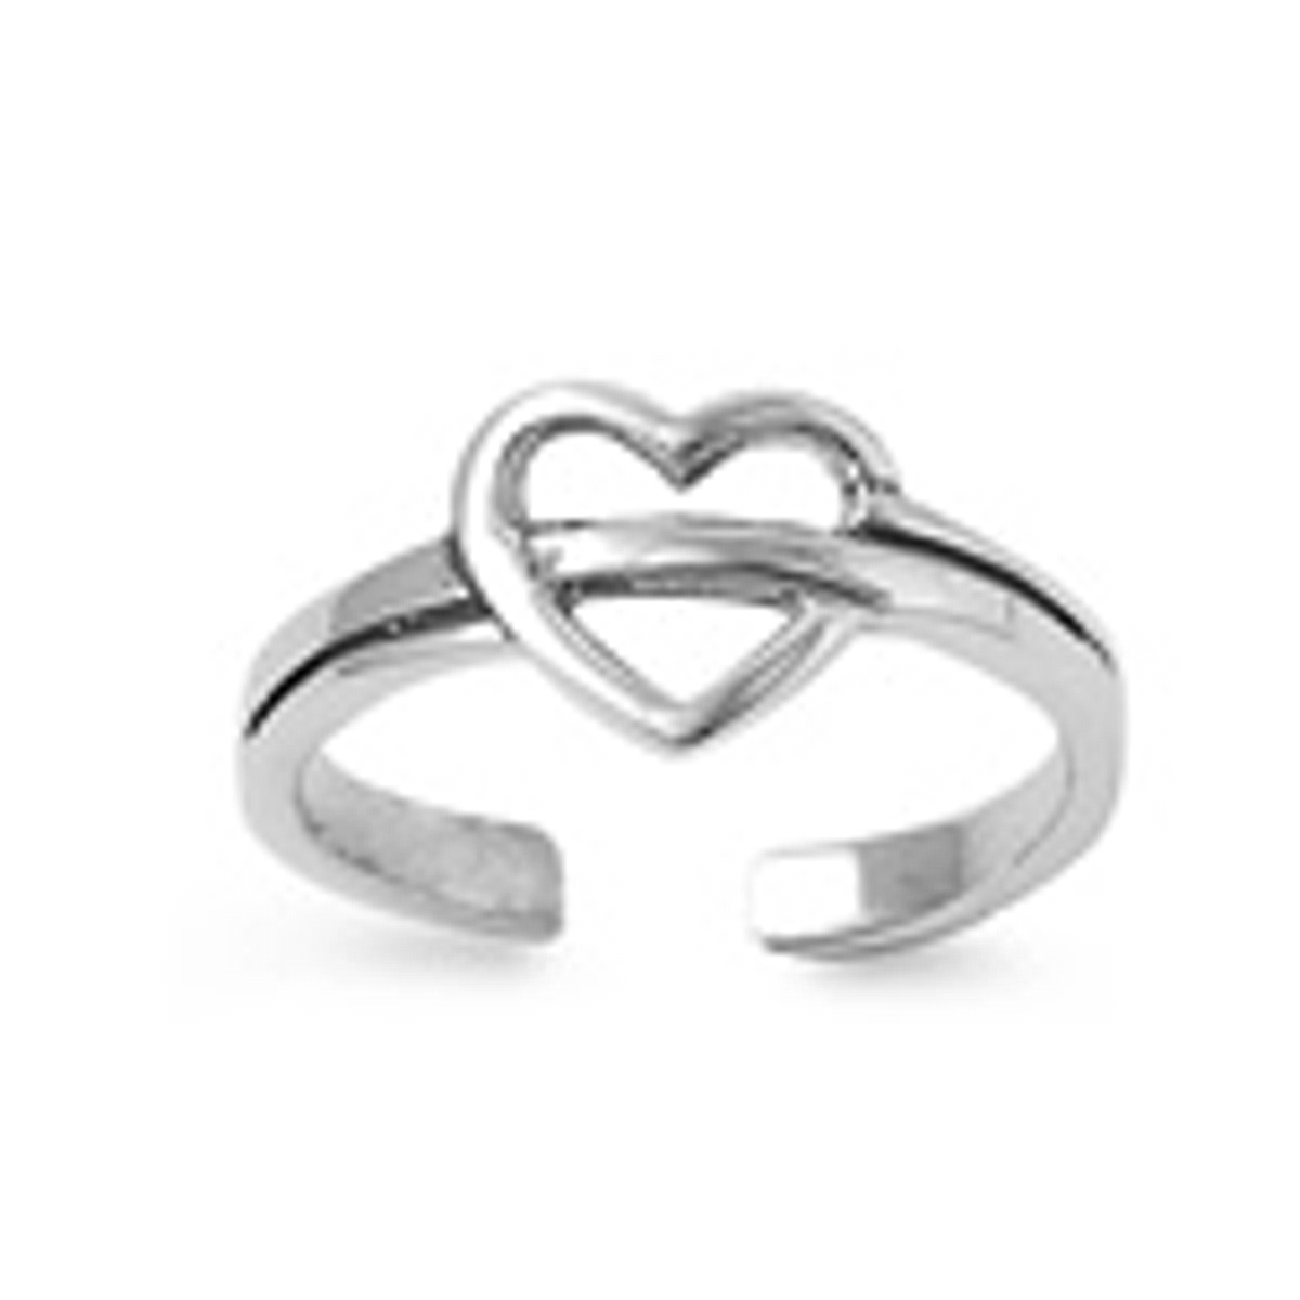 Band Through Heart Adjustable Toe Ring